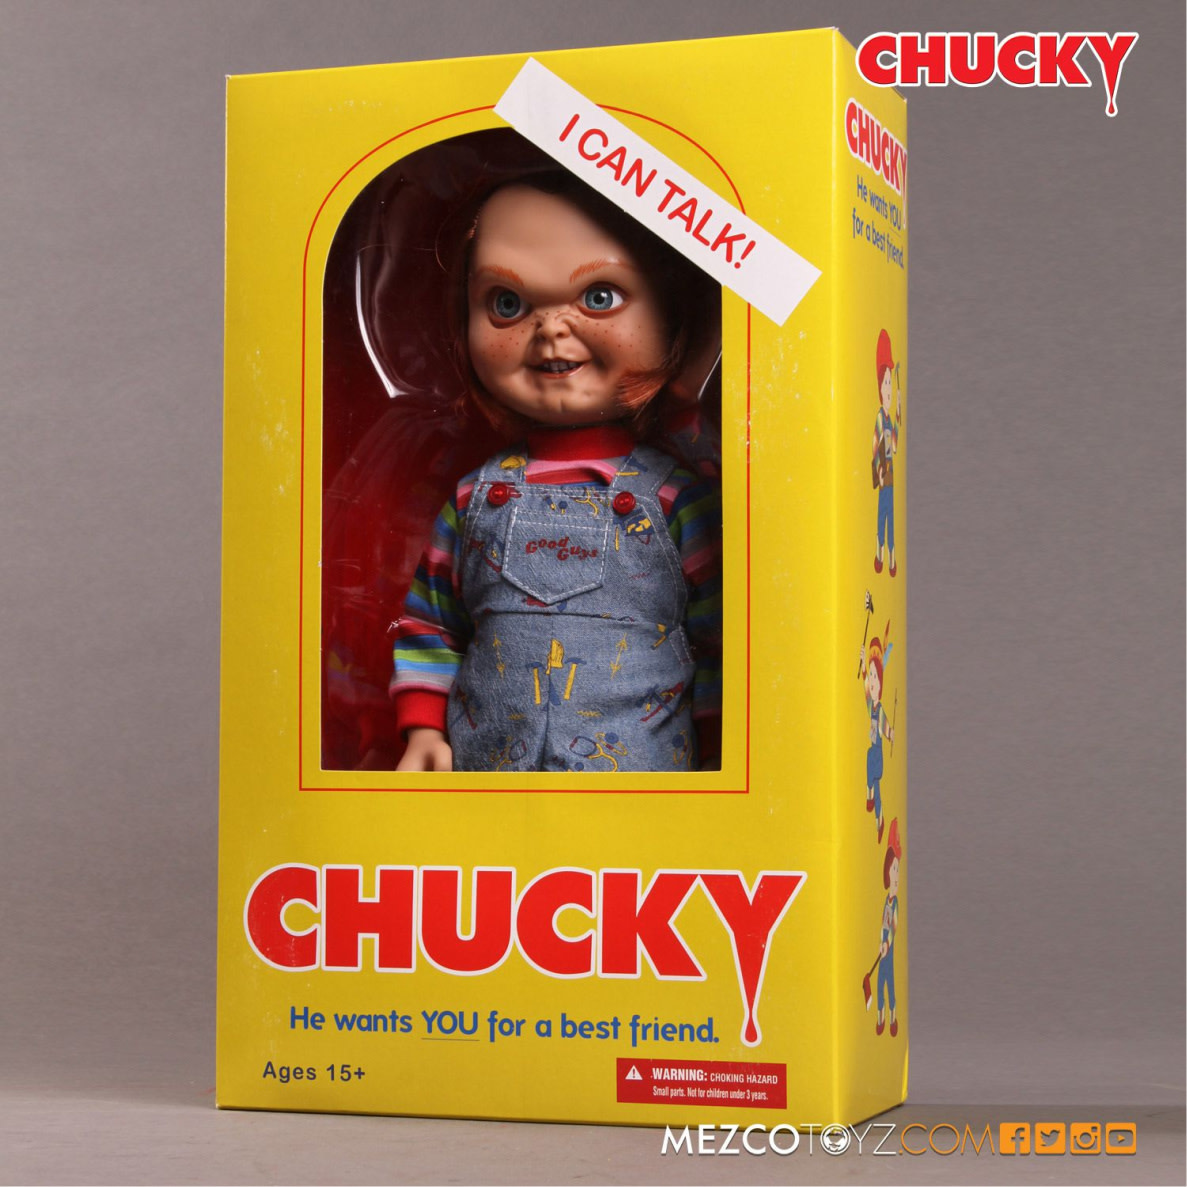 Mezcotoys Child's Play: 15 inch Talking Sneering Chucky Doll